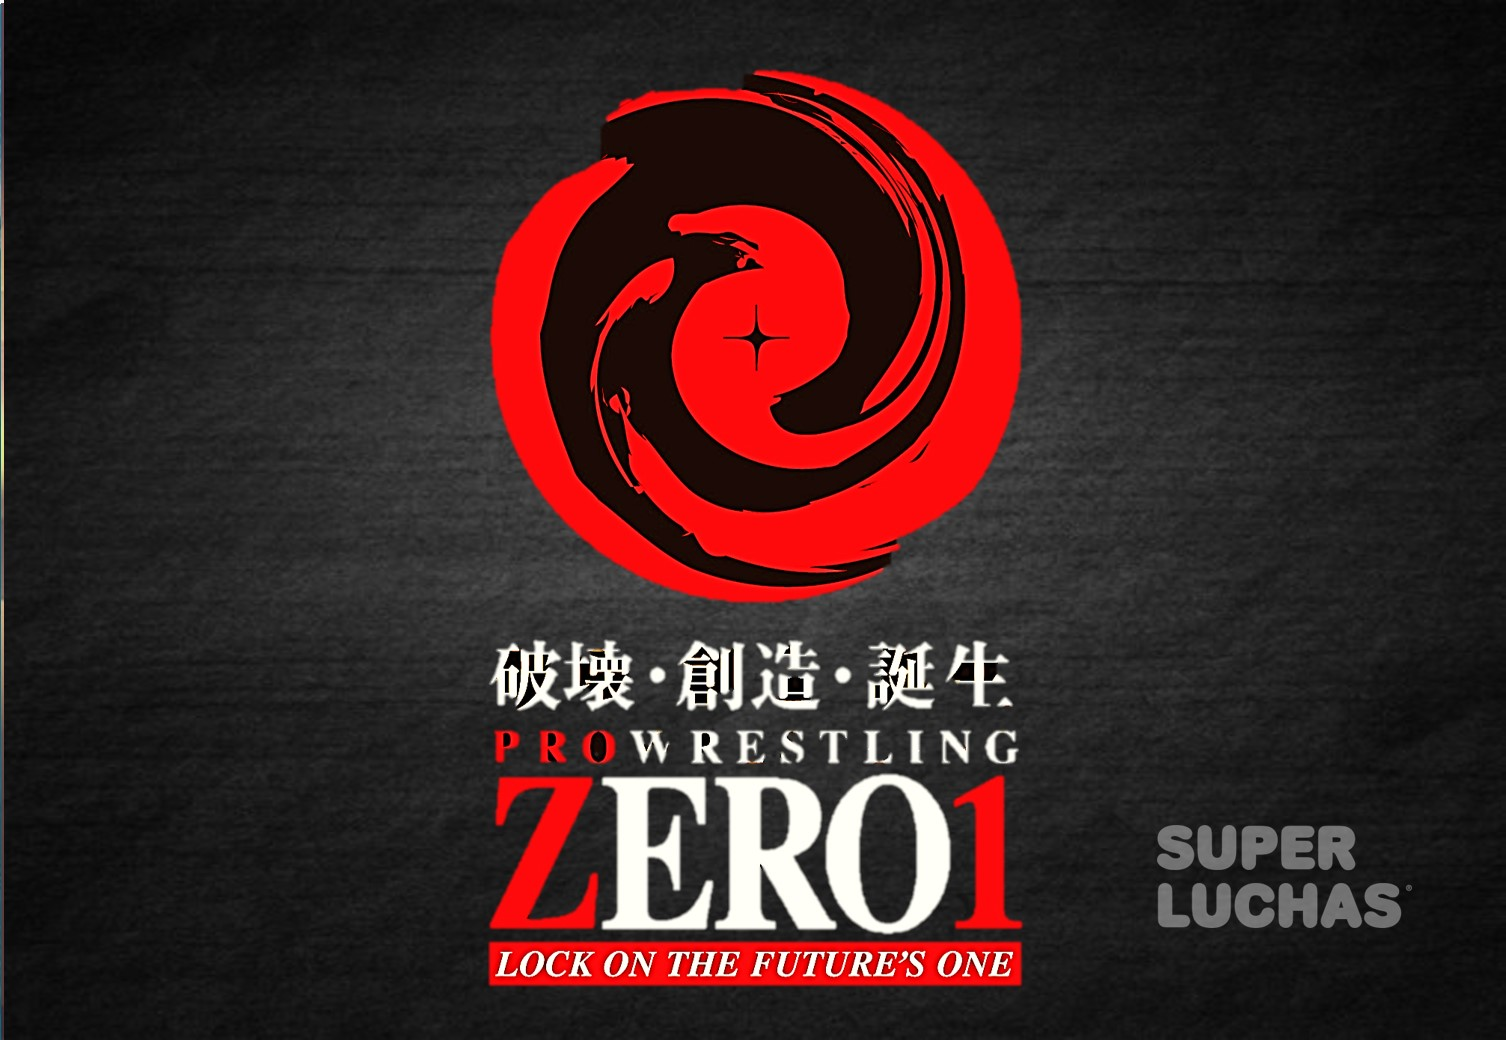 Zero1: The difficult road to 20 years of existence 2